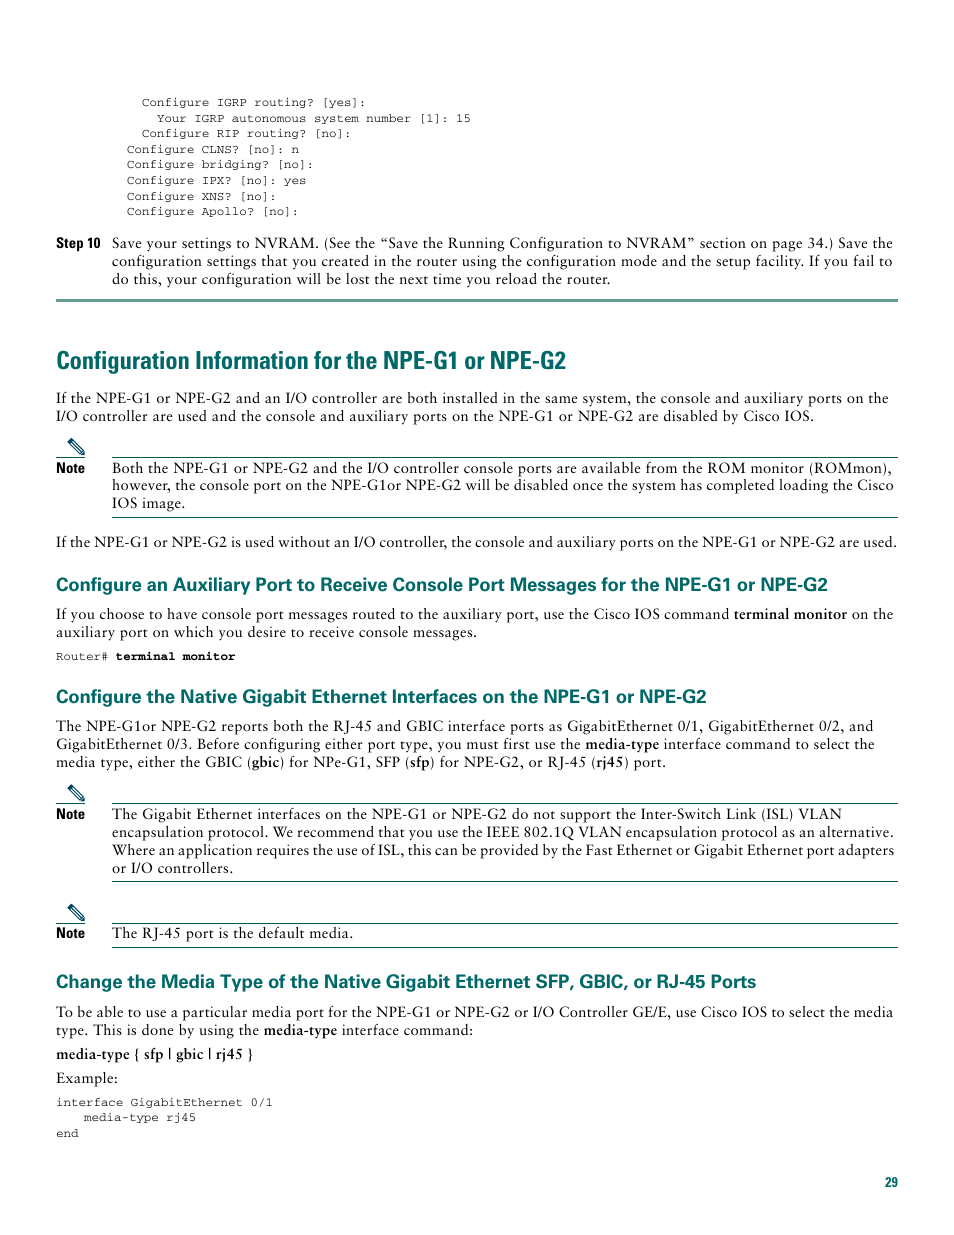 Configuration information for the npe-g1 or npe-g2 | Cisco 7200 VXR